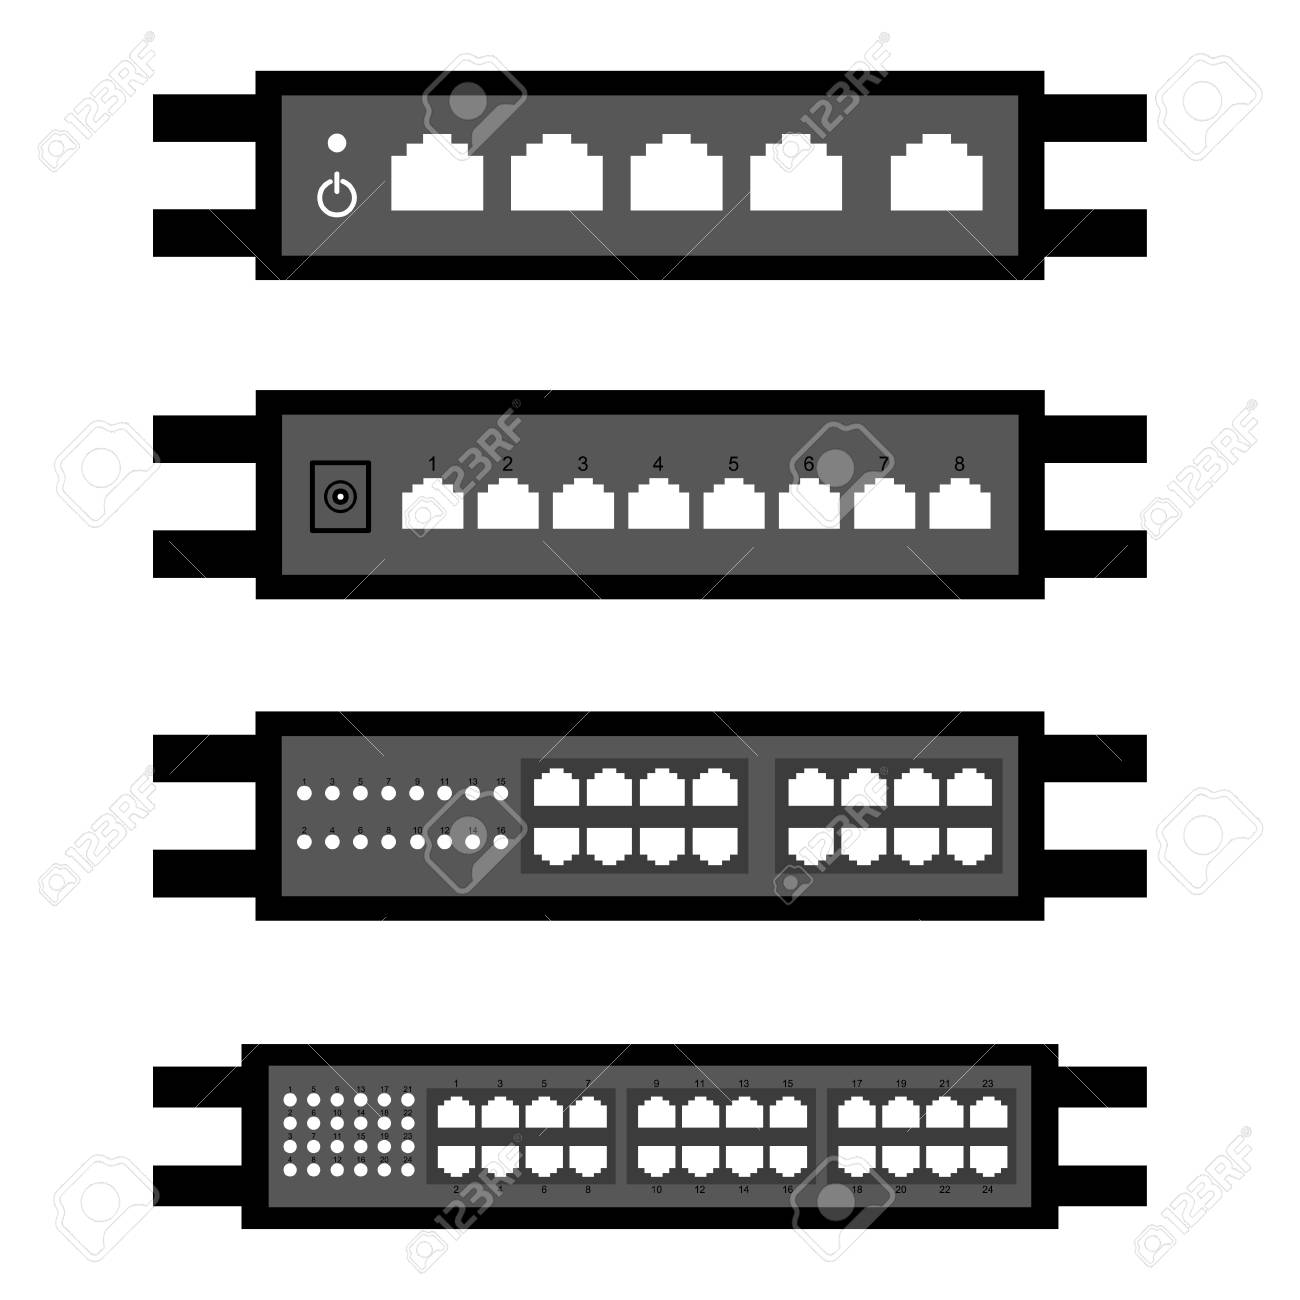 vector of Network switch or router icon set